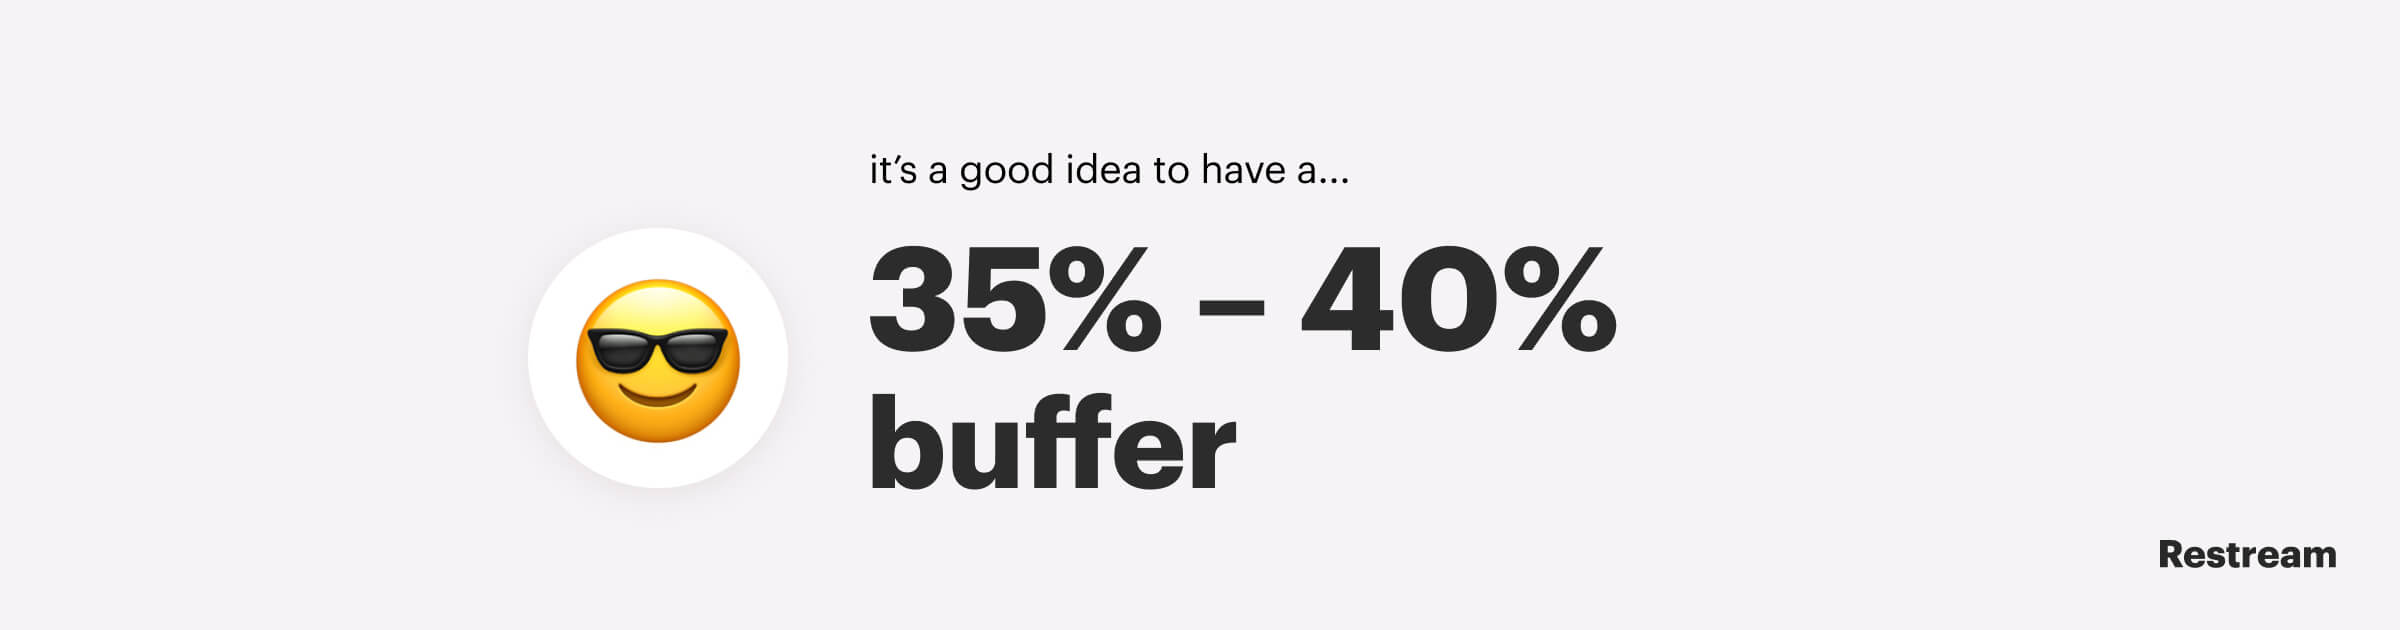 It's generally a good idea to have a 35% to 40% buffer